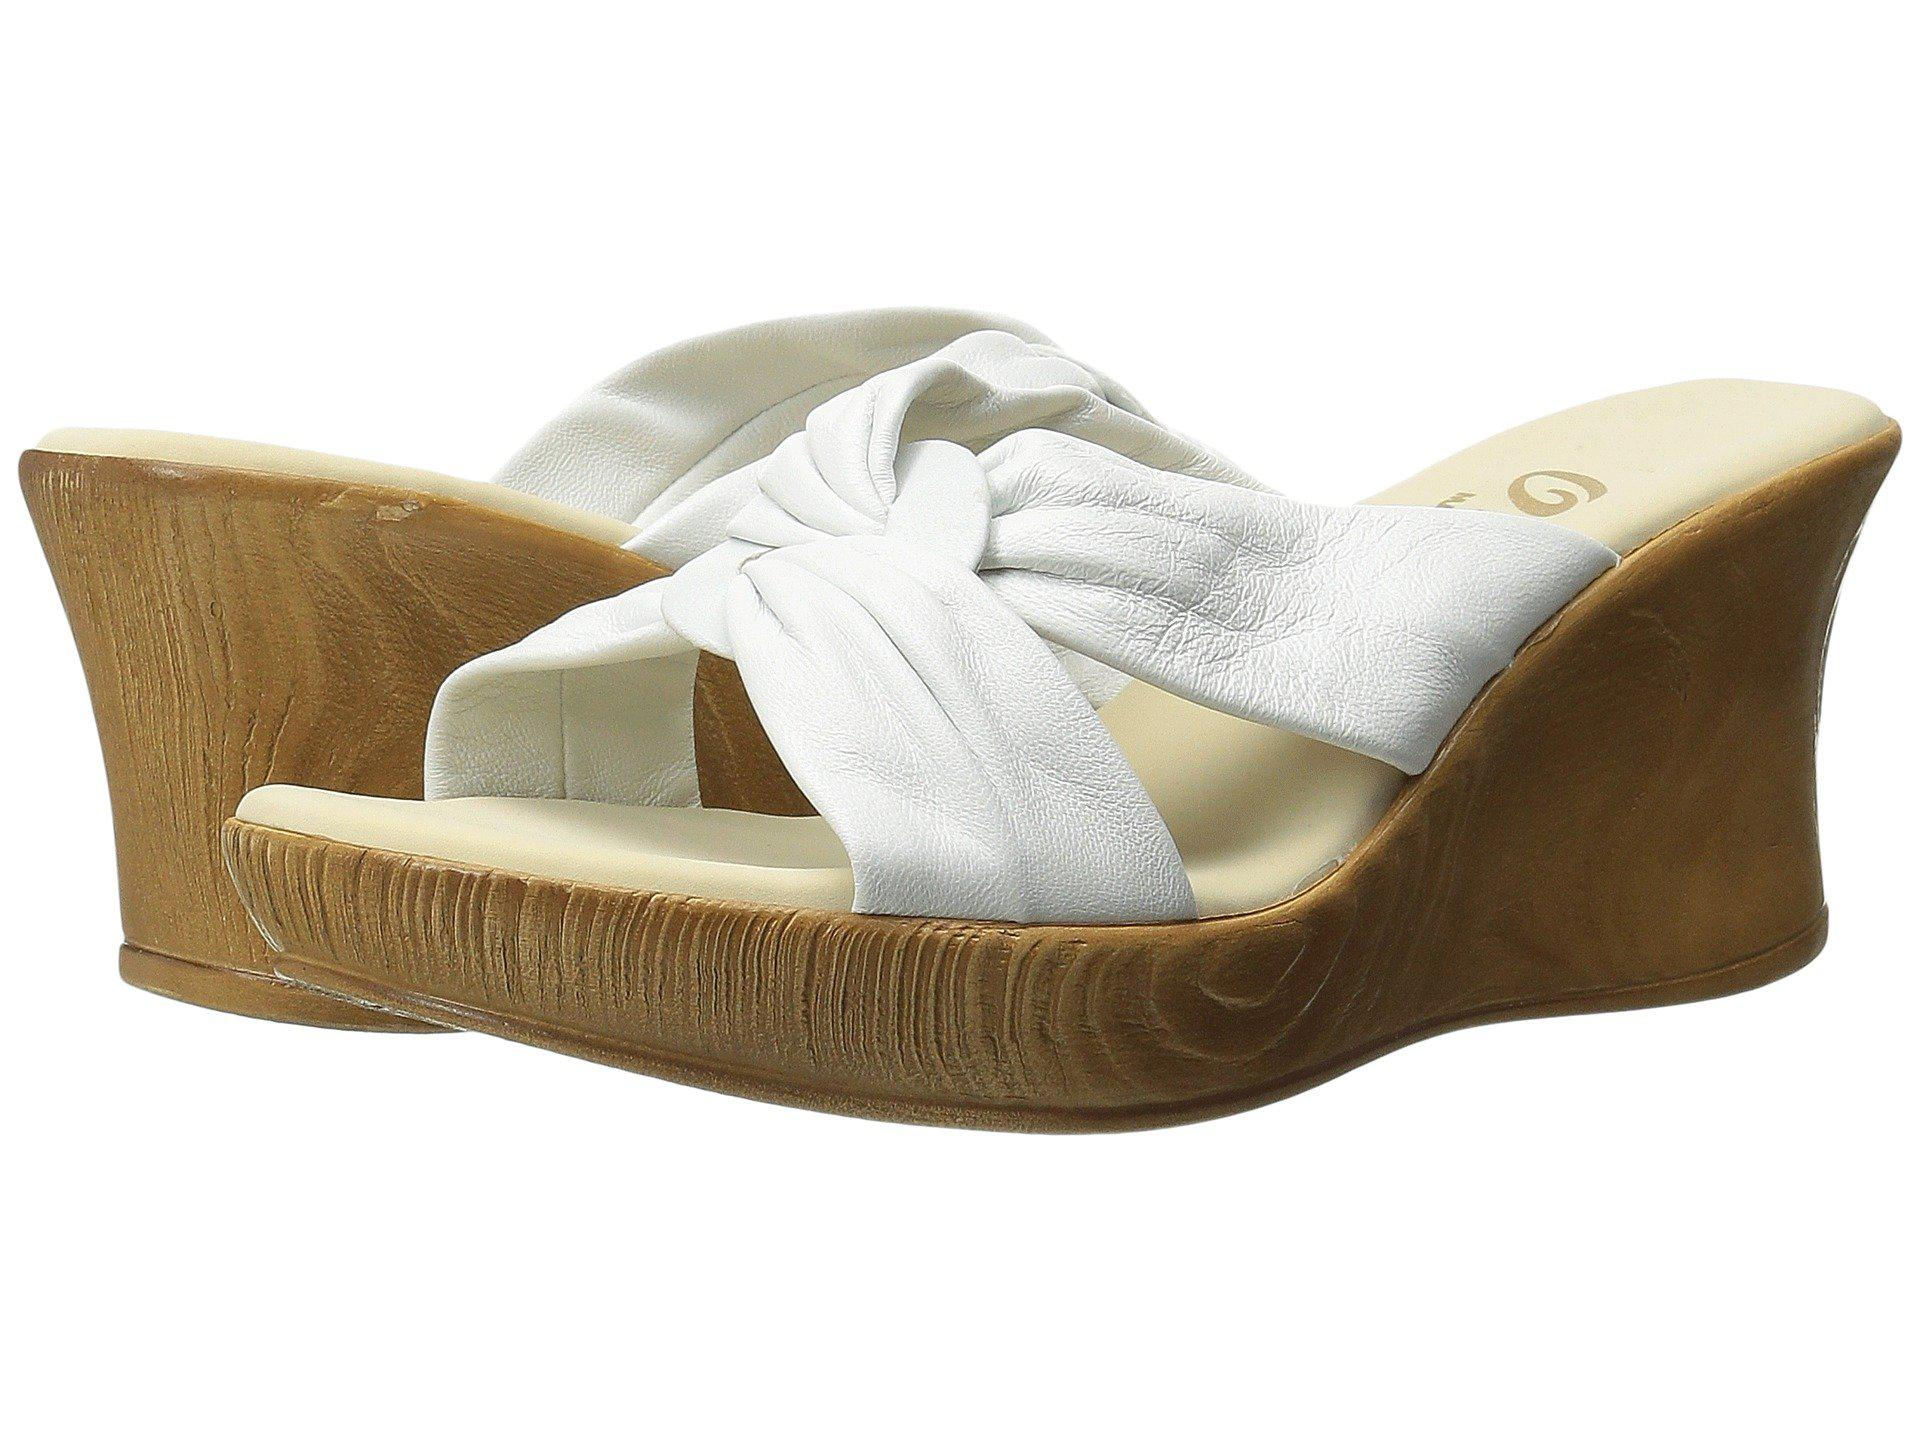 Lyst - Onex Puffy (white) Women s Wedge Shoes in White b65a70ba0e